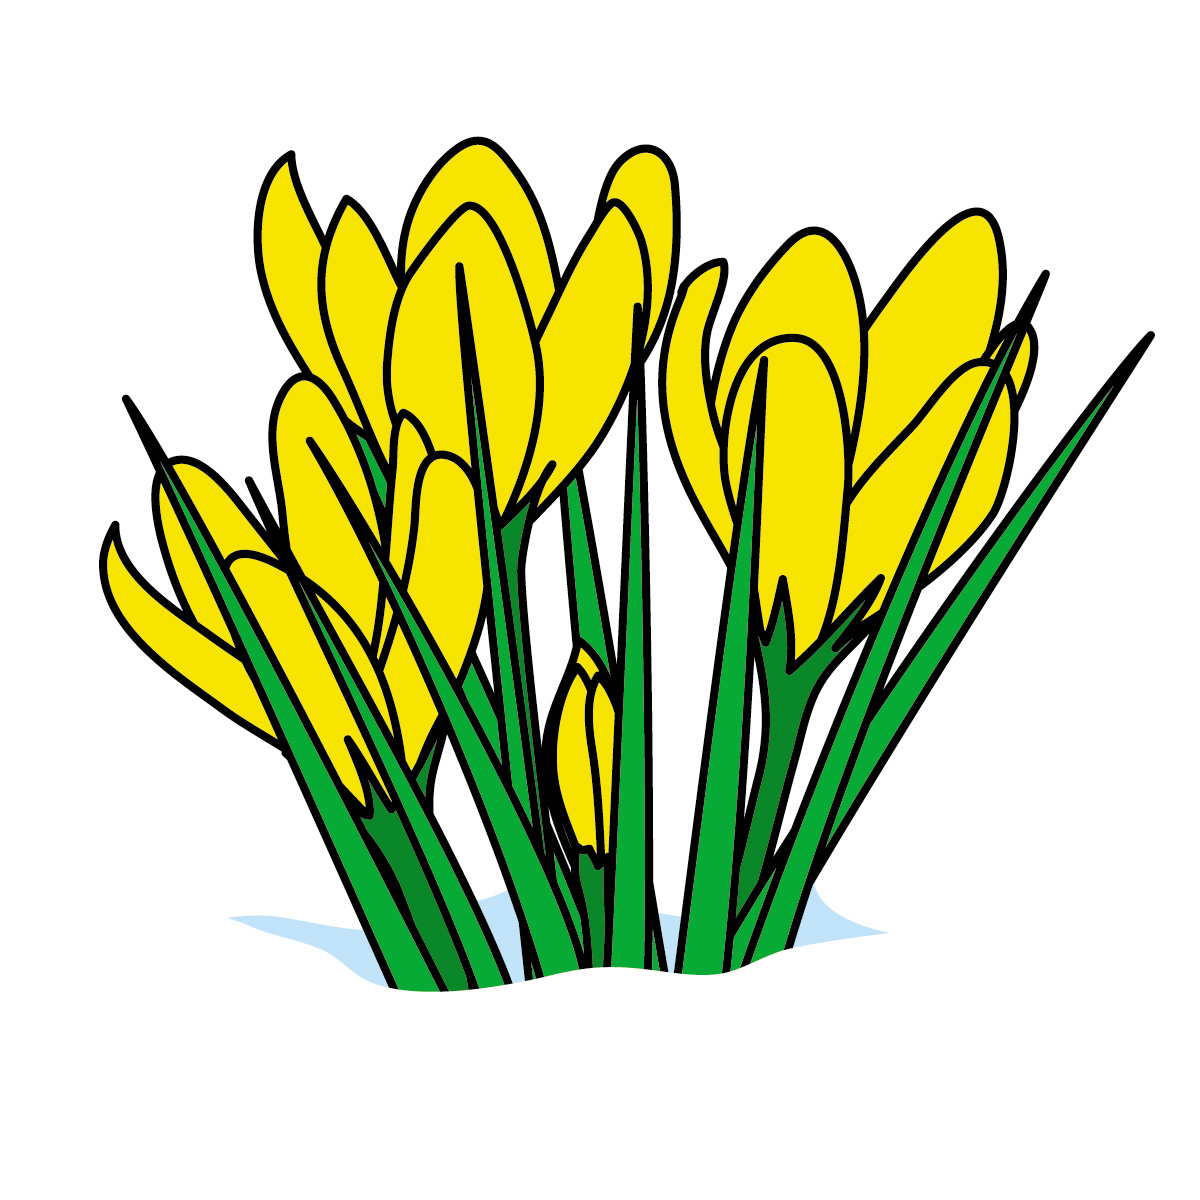 flower clip art color - photo #29